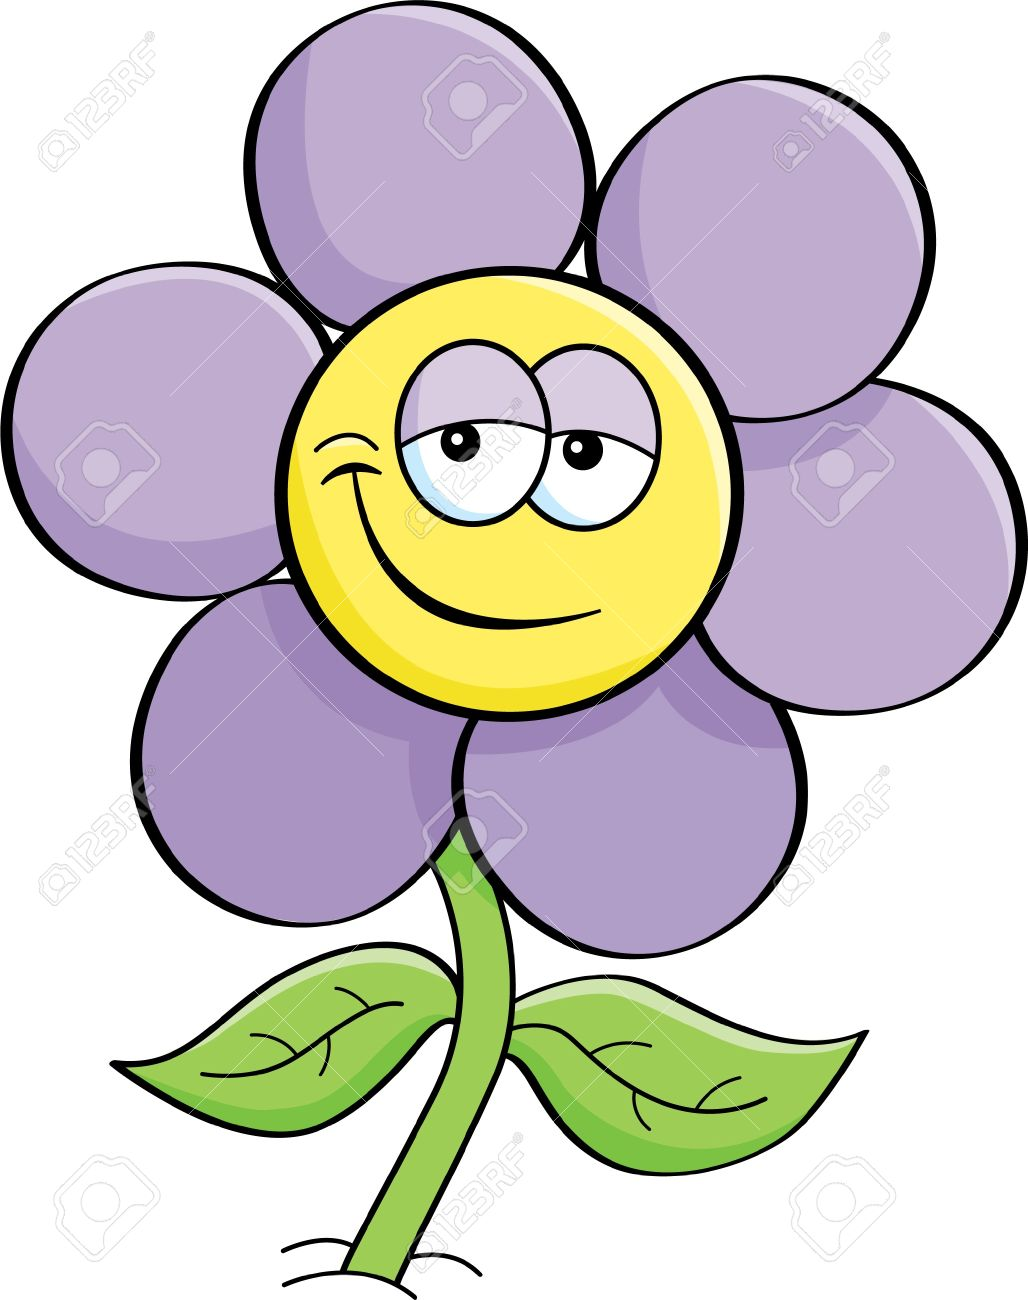 1028x1300 Flower Cartoon Pictures Clip Art Colouring To Tiny Pot Google